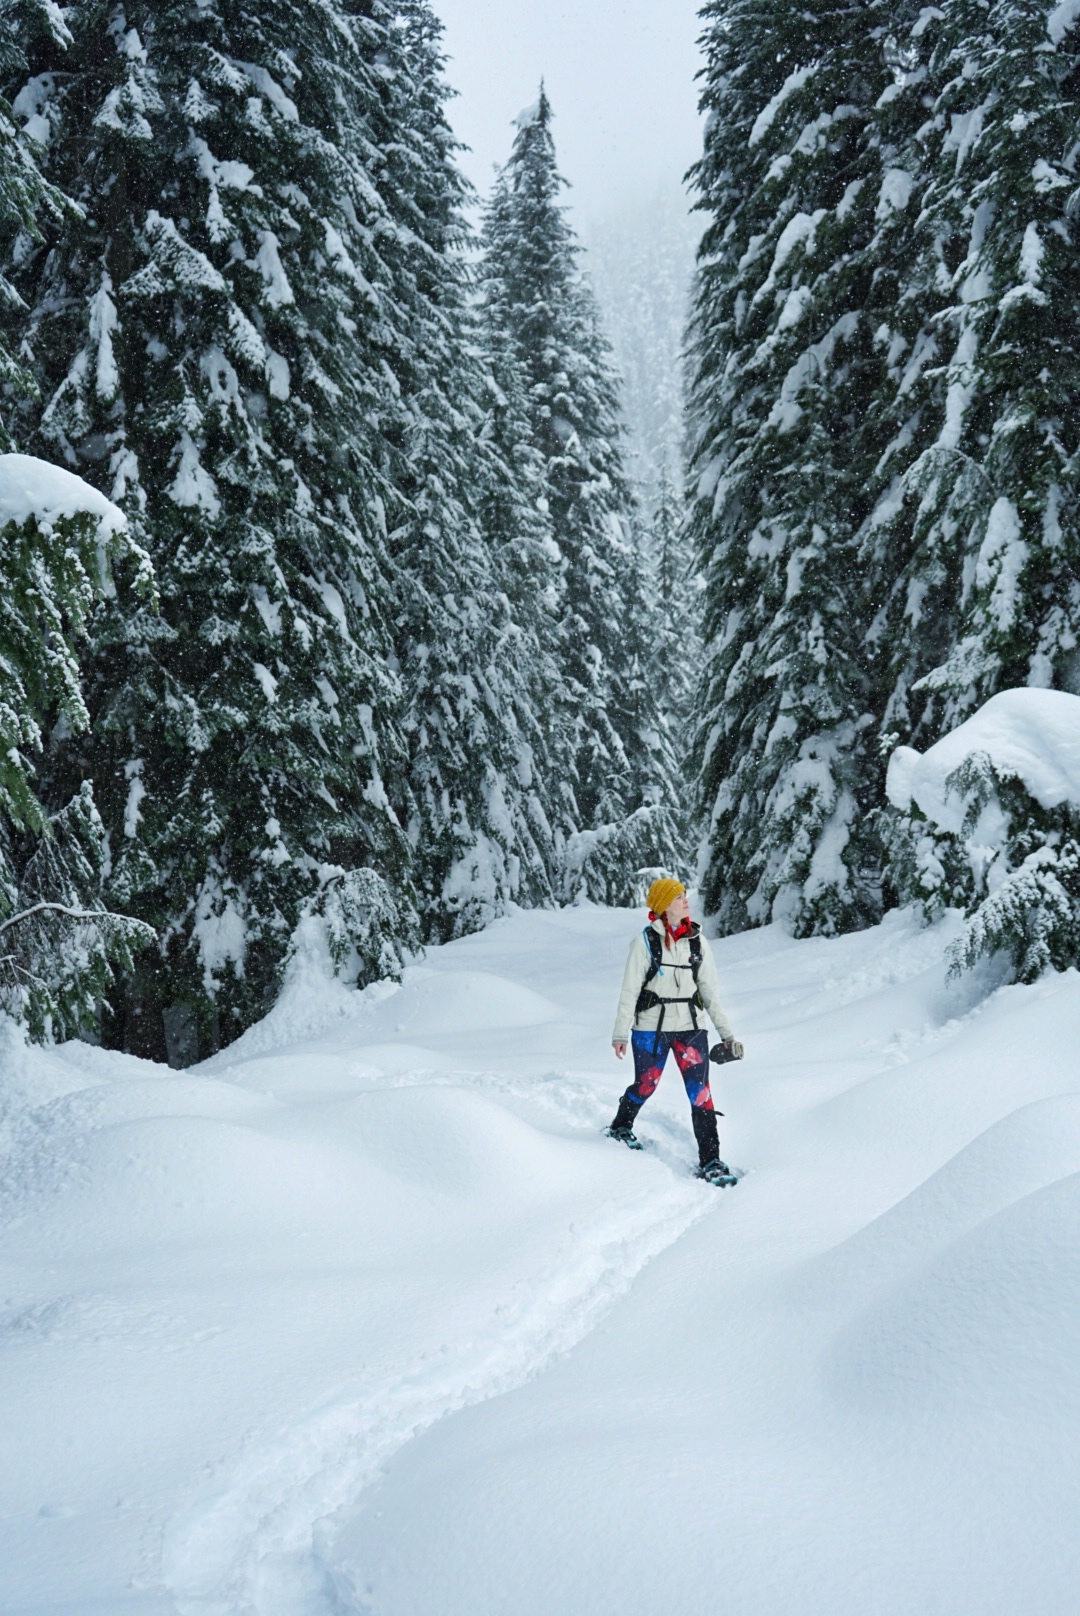 Flat road walks can be a great option when the avalanche forecast is high!